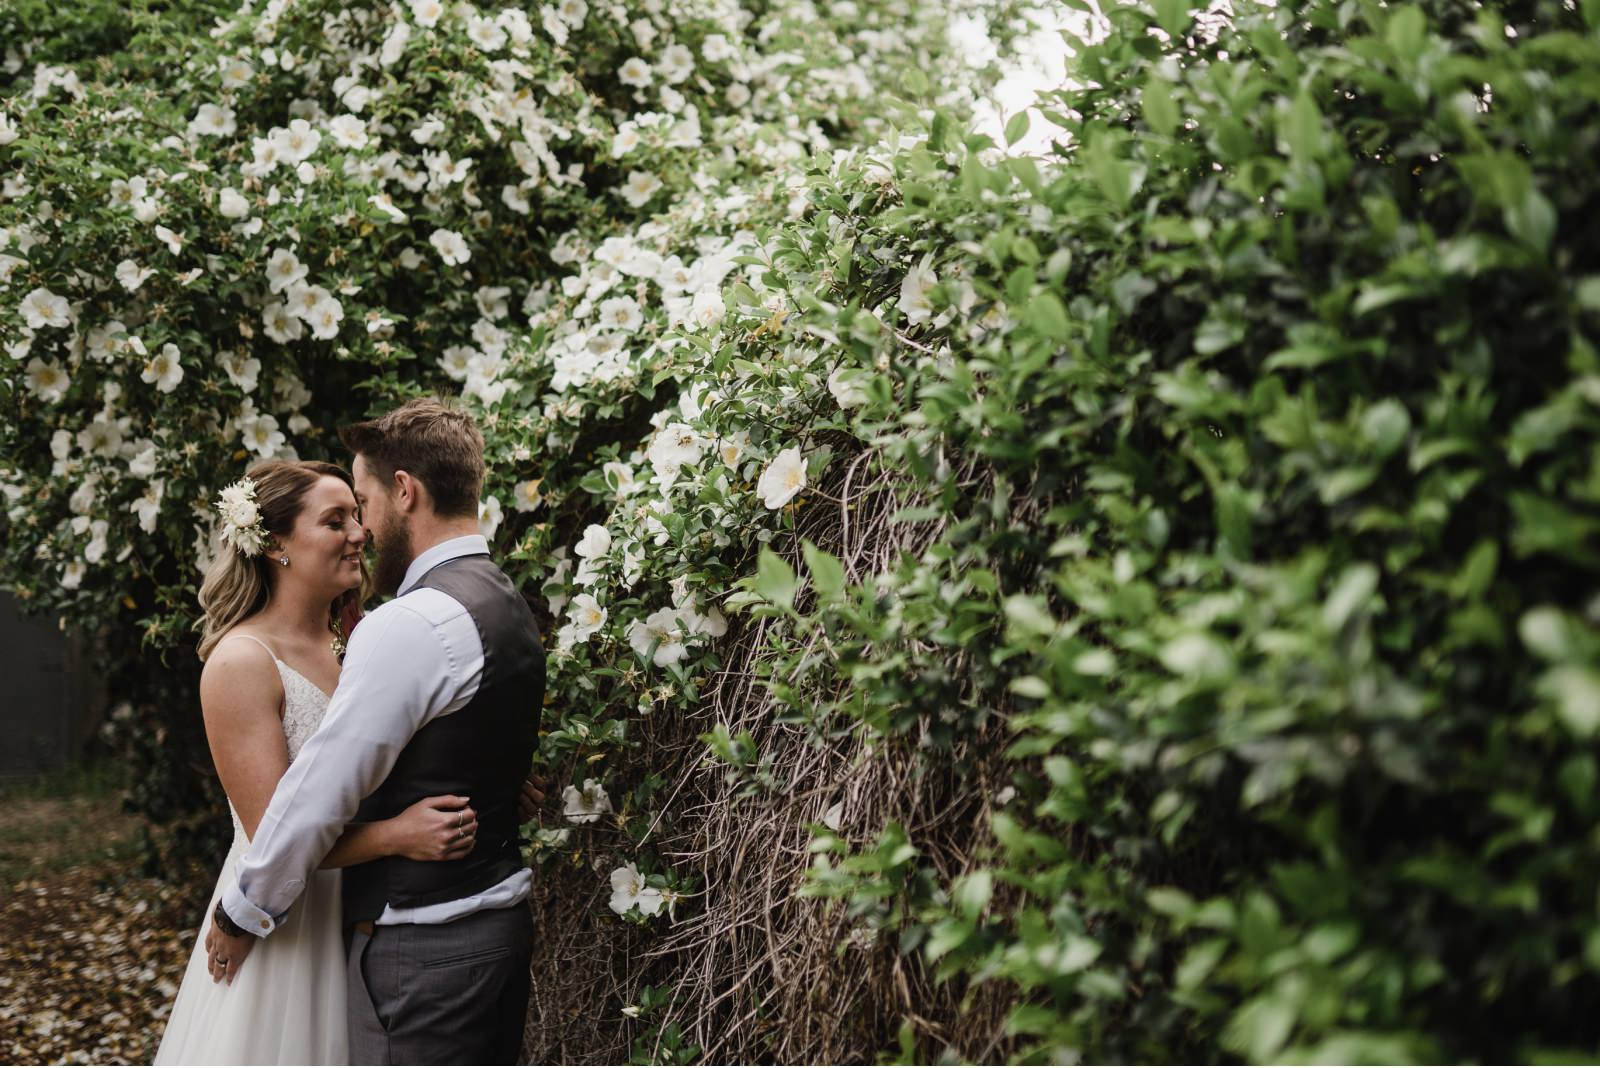 scone-wedding-photographer-upper-hunter-valley-57